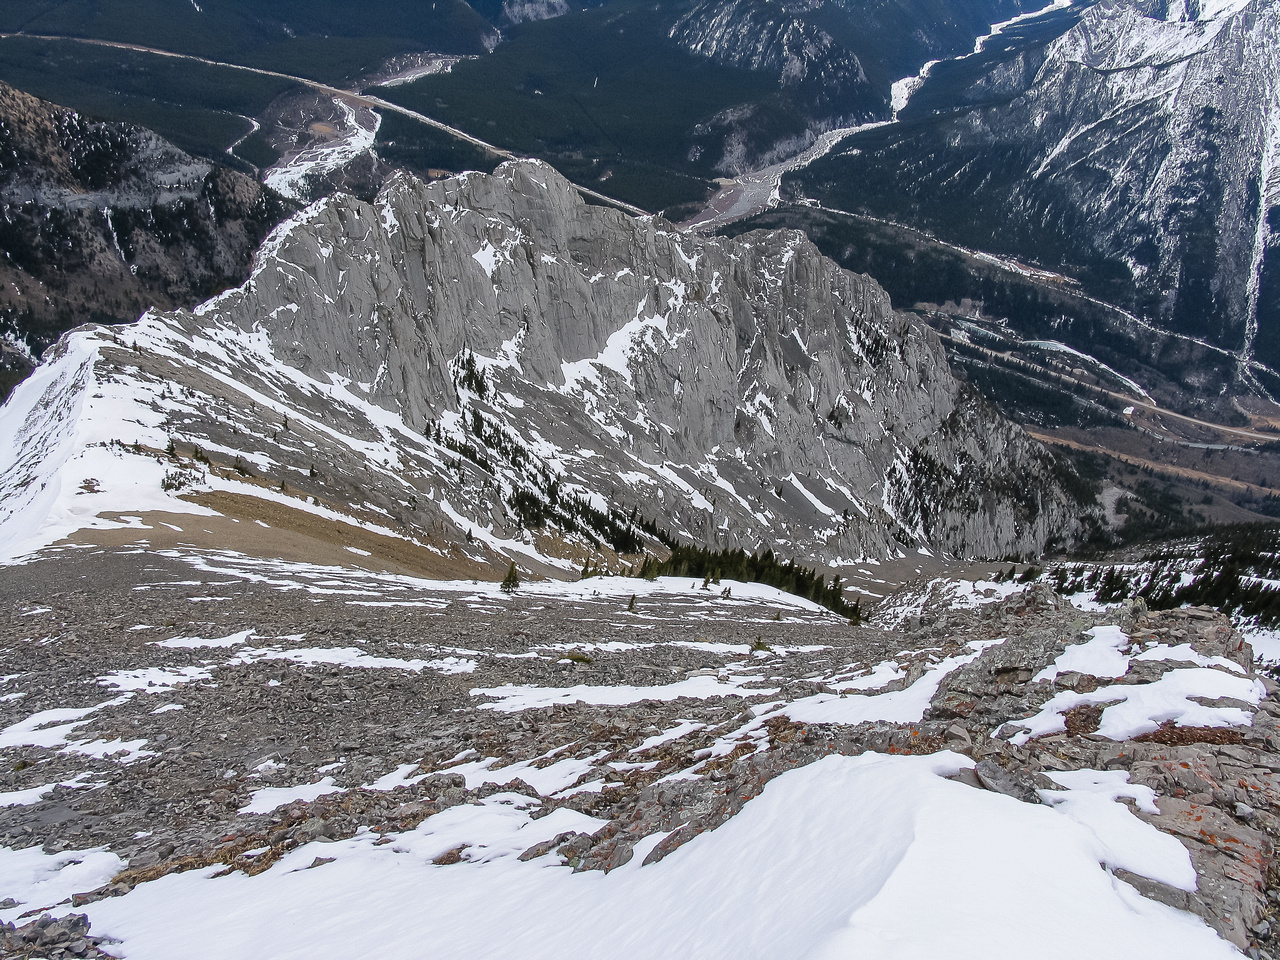 Looking forward to going down the scree gully.